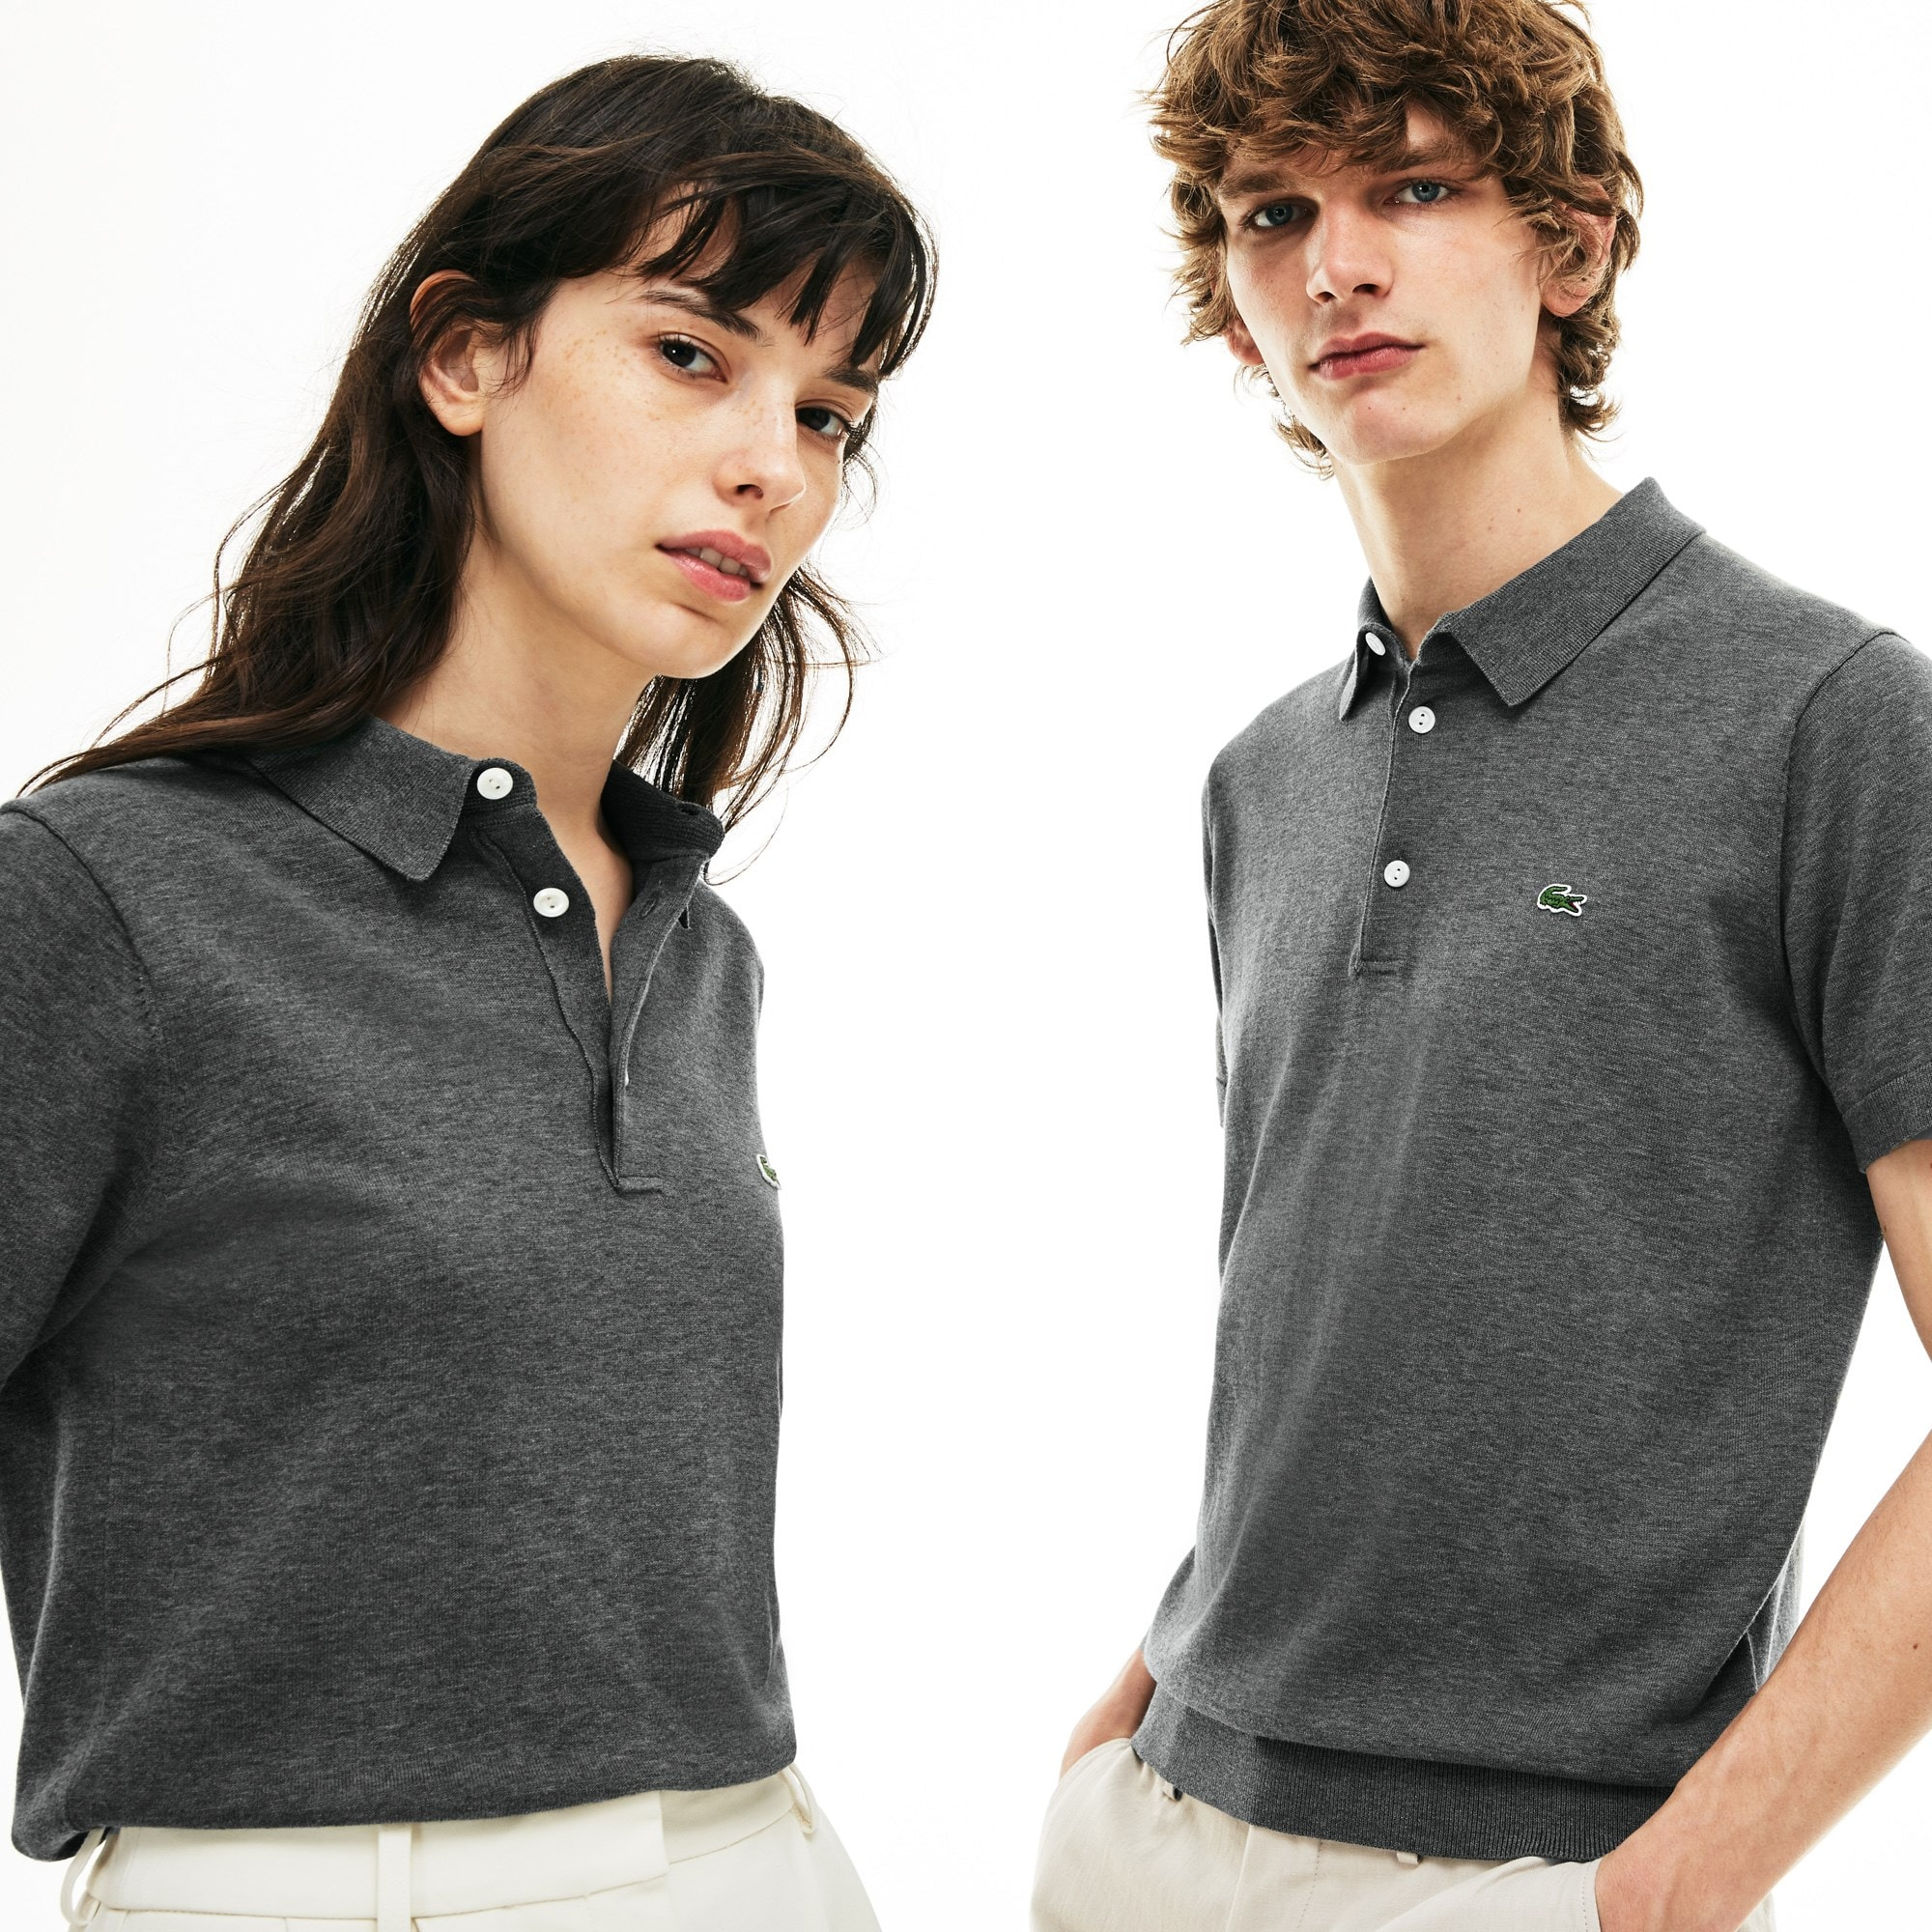 Gechineerde jersey unisex polo, limited edition 85-jarig jubileum